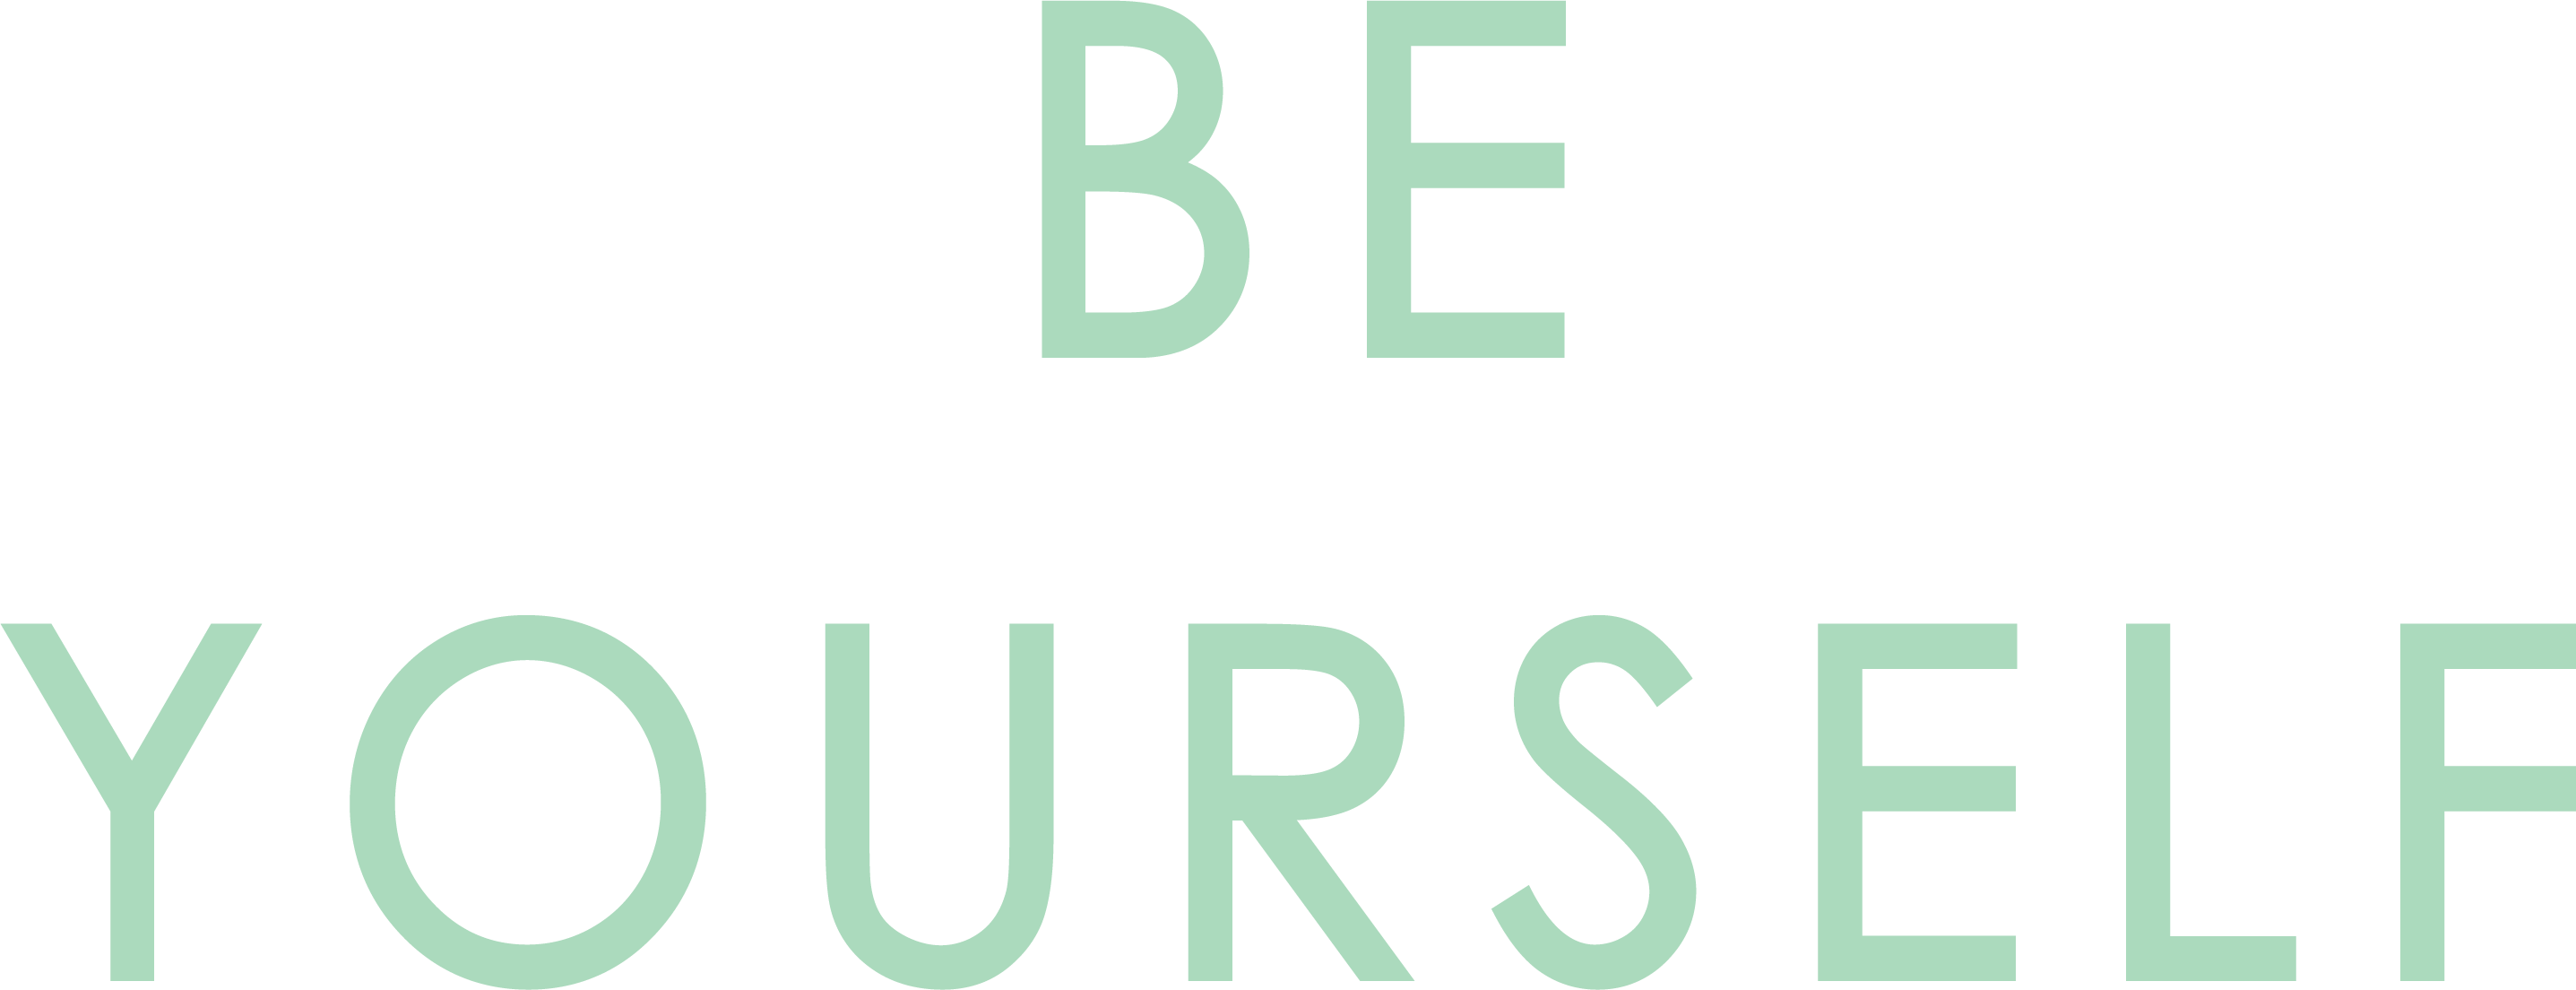 Be Yourself SVG Cut File